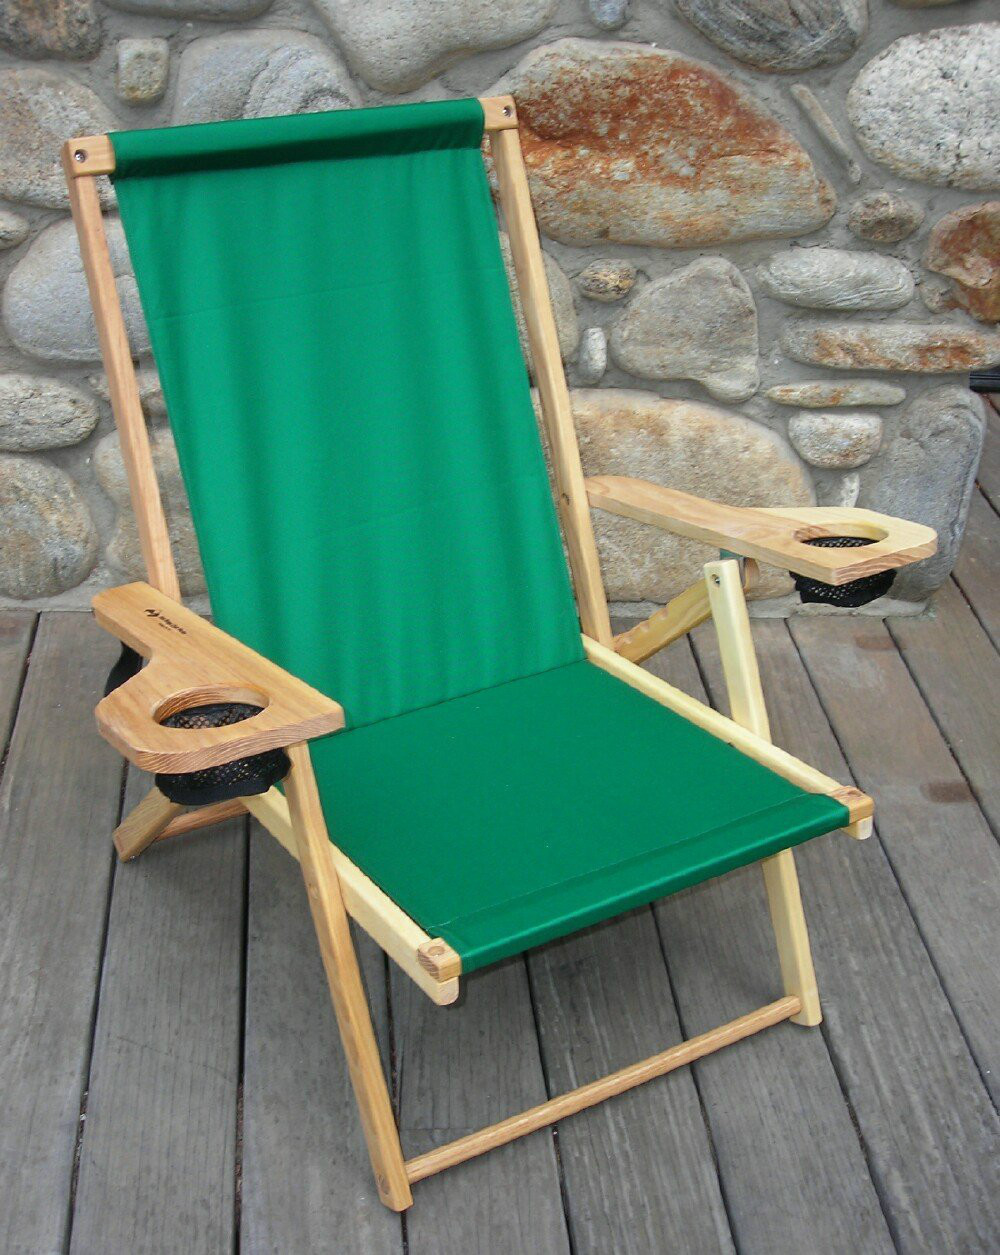 Outdoor folding chair parts - Outdoor Folding Chair Blue Italian Beach Chair Parts Armrest Hiking Folding Rclining Beach Chair